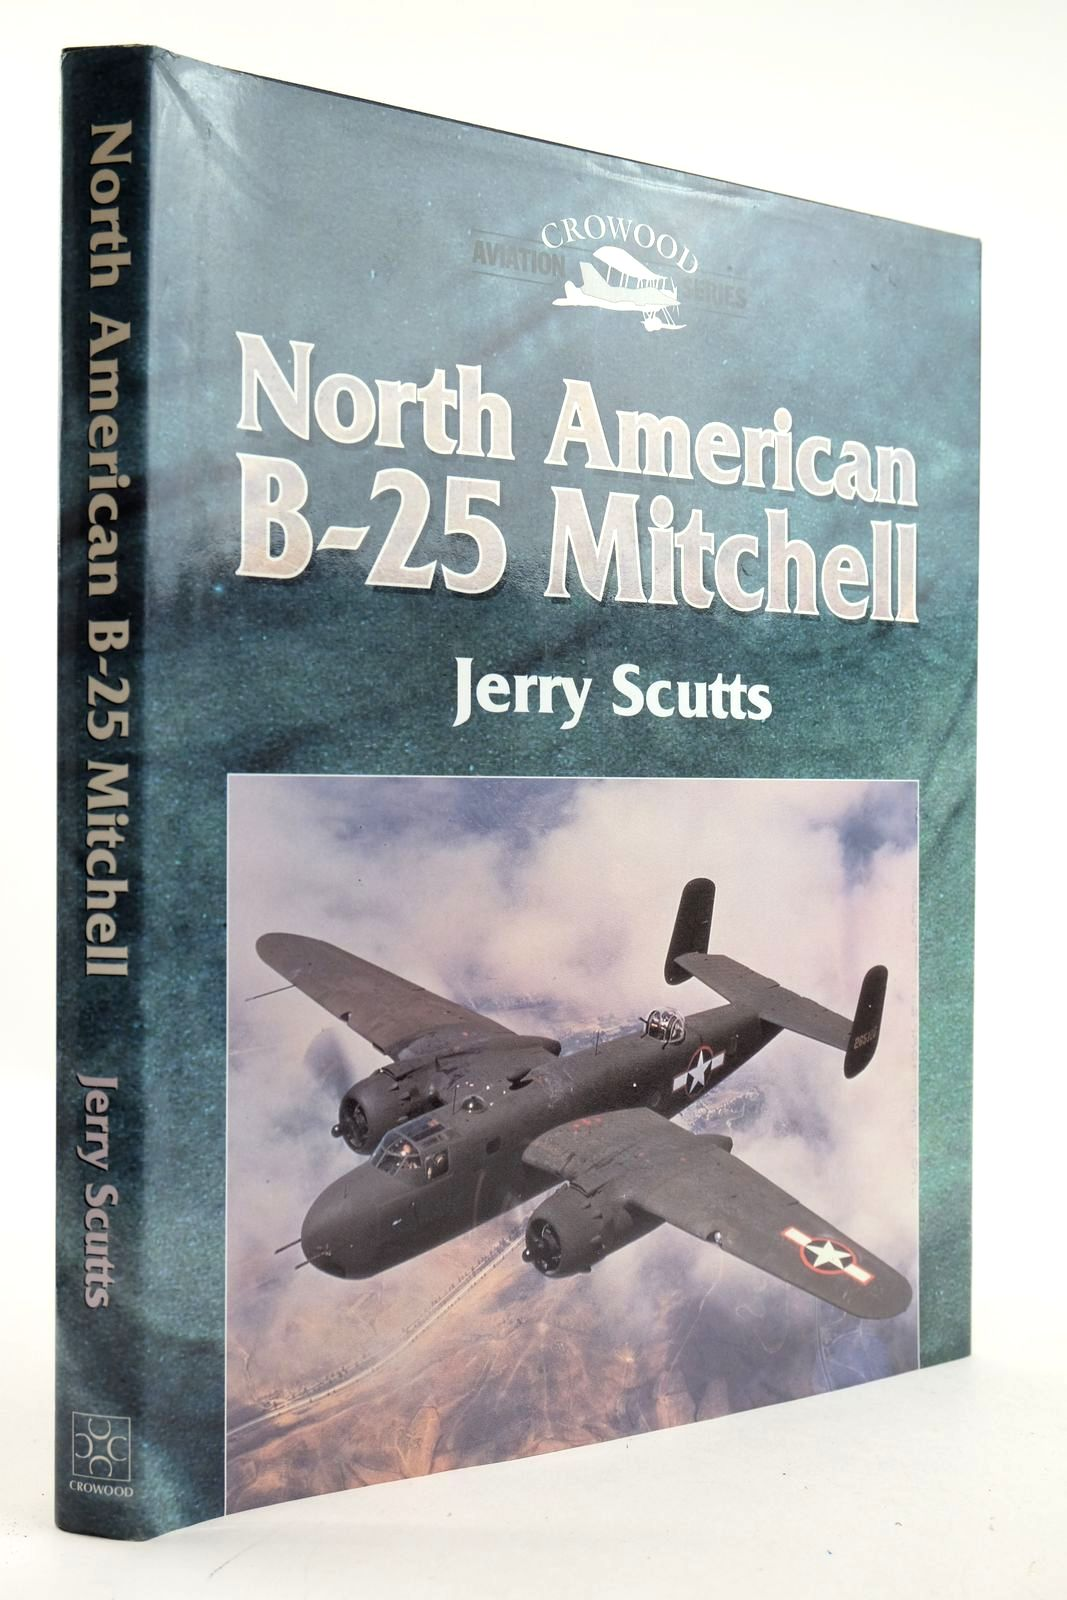 Photo of NORTH AMERICAN B-25 MITCHELL written by Scutts, Jerry published by The Crowood Press (STOCK CODE: 2133250)  for sale by Stella & Rose's Books